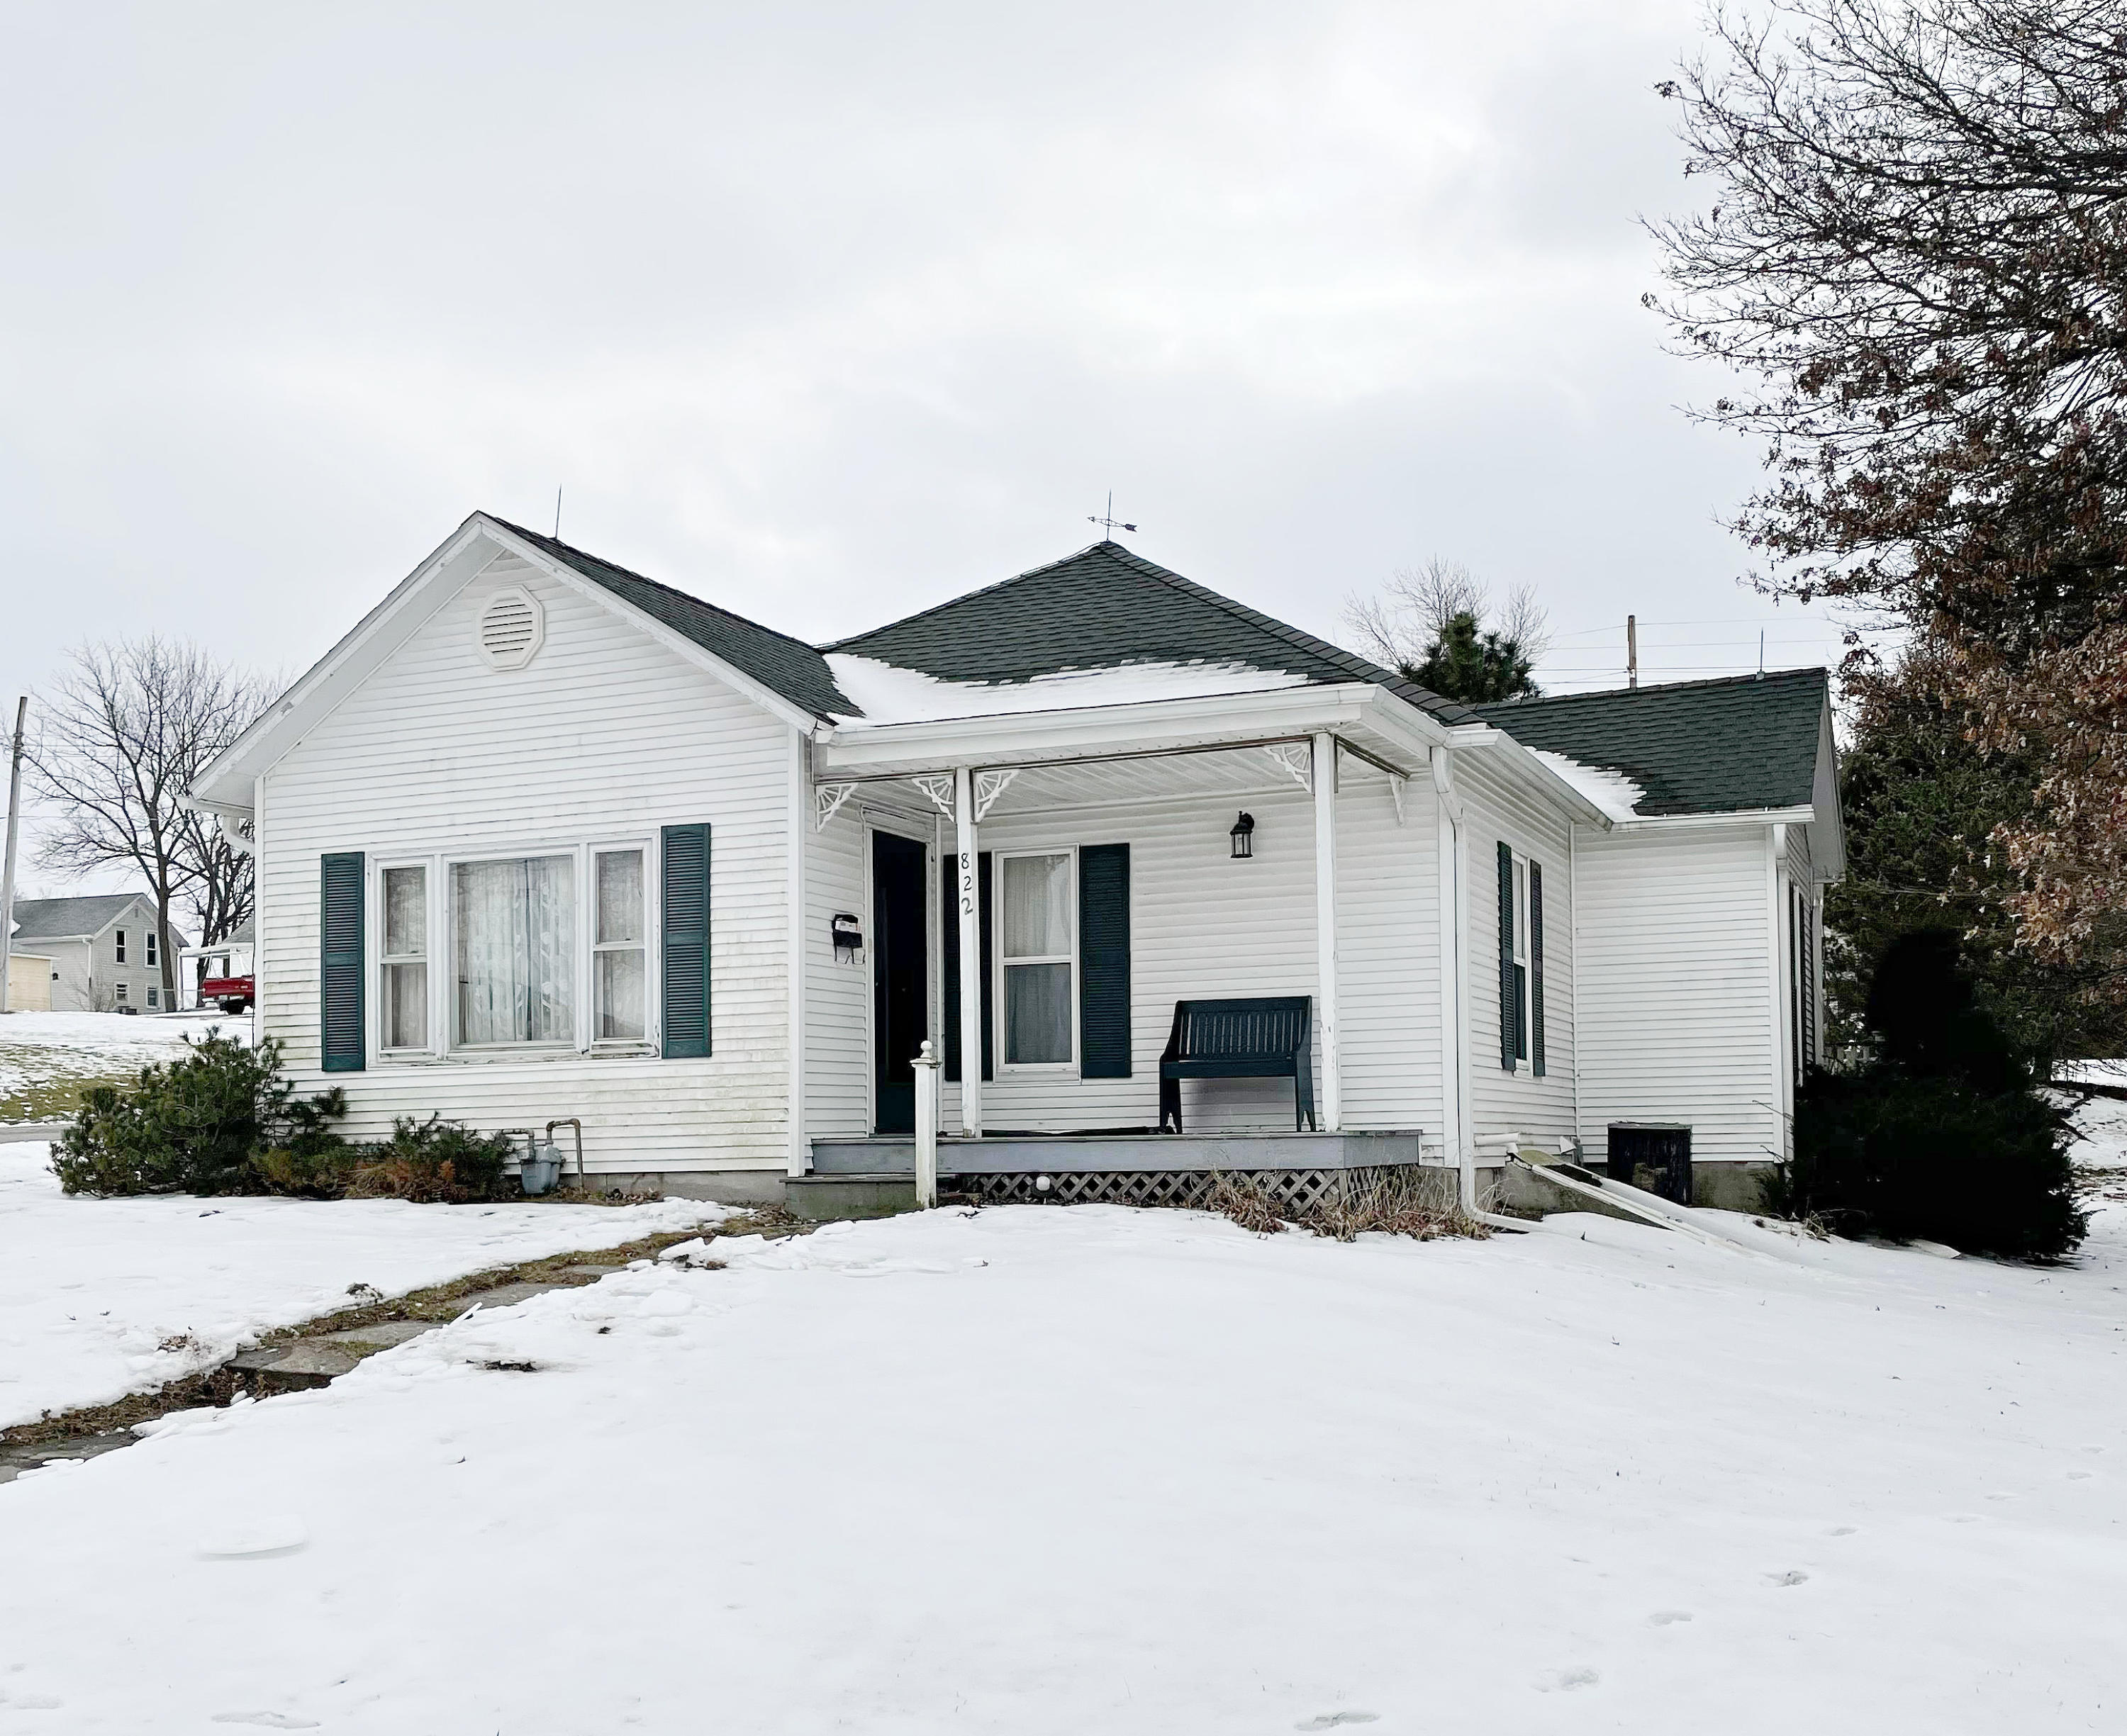 822 E 3RD Street, Maryville, Missouri 64468, 2 Bedrooms Bedrooms, ,1 BathroomBathrooms,Residential,3RD,4937